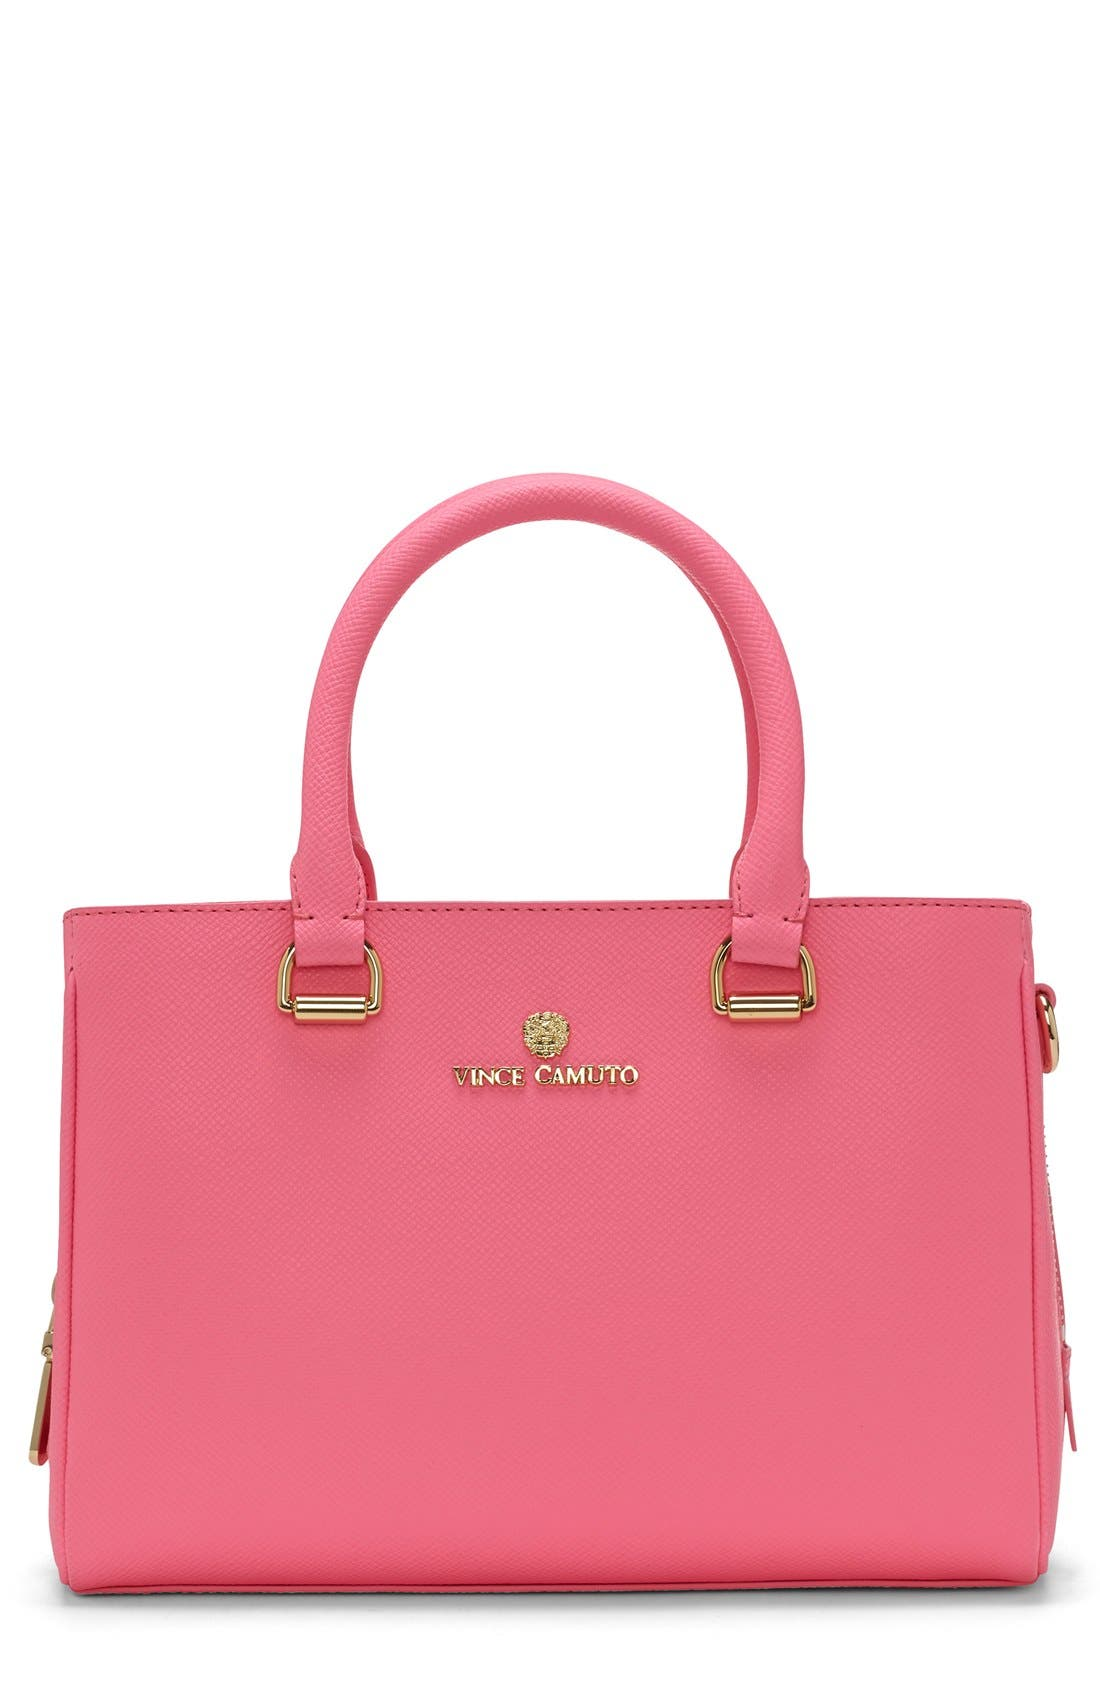 Main Image - Vince Camuto 'Small Thea' Leather Satchel